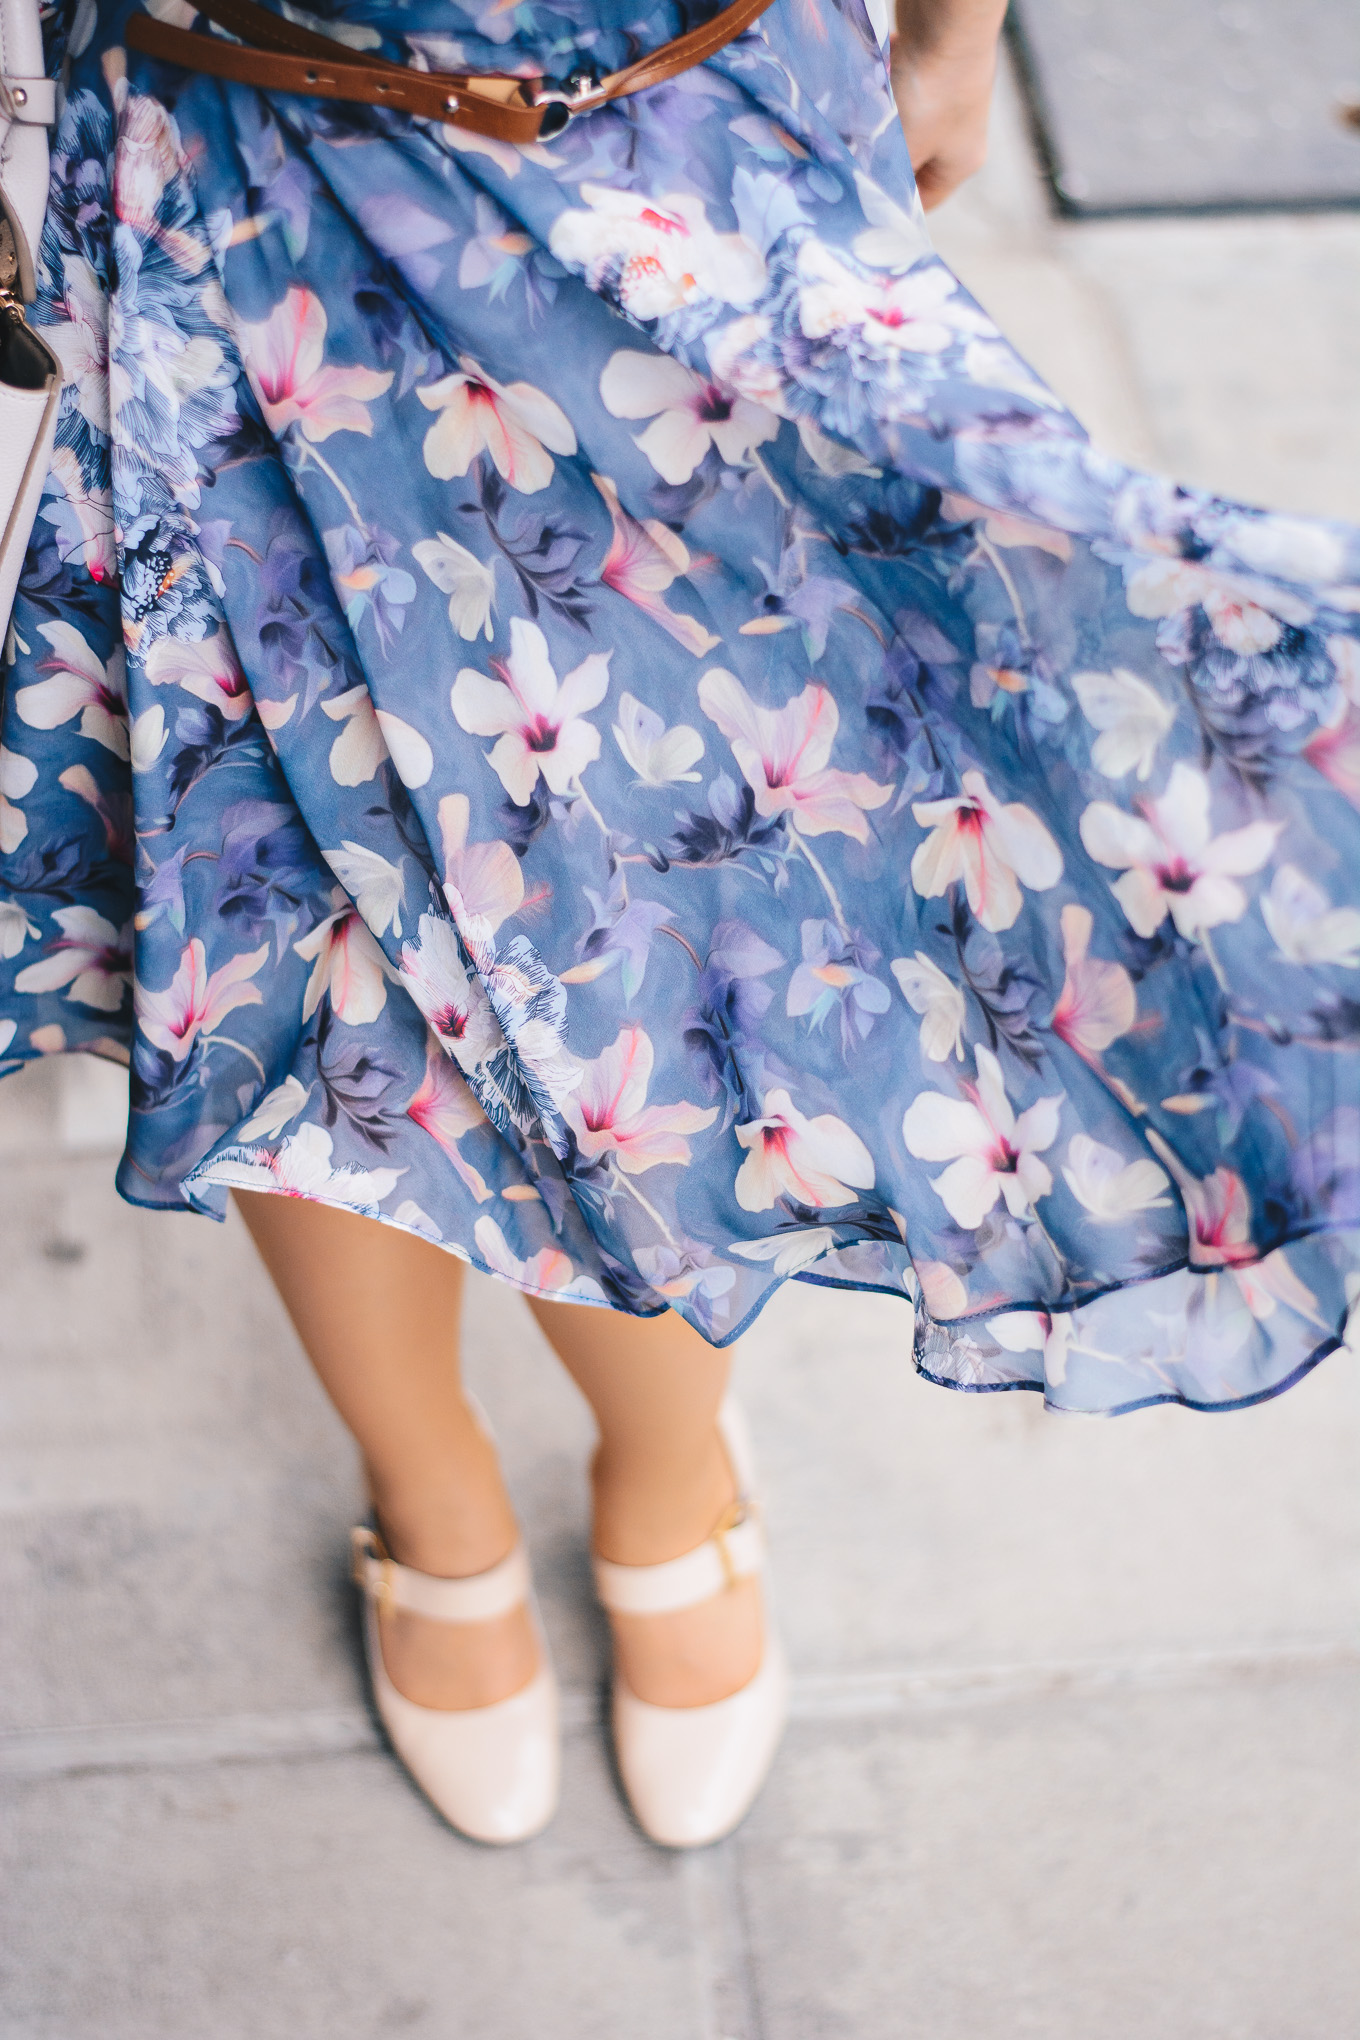 twirl my floral dress